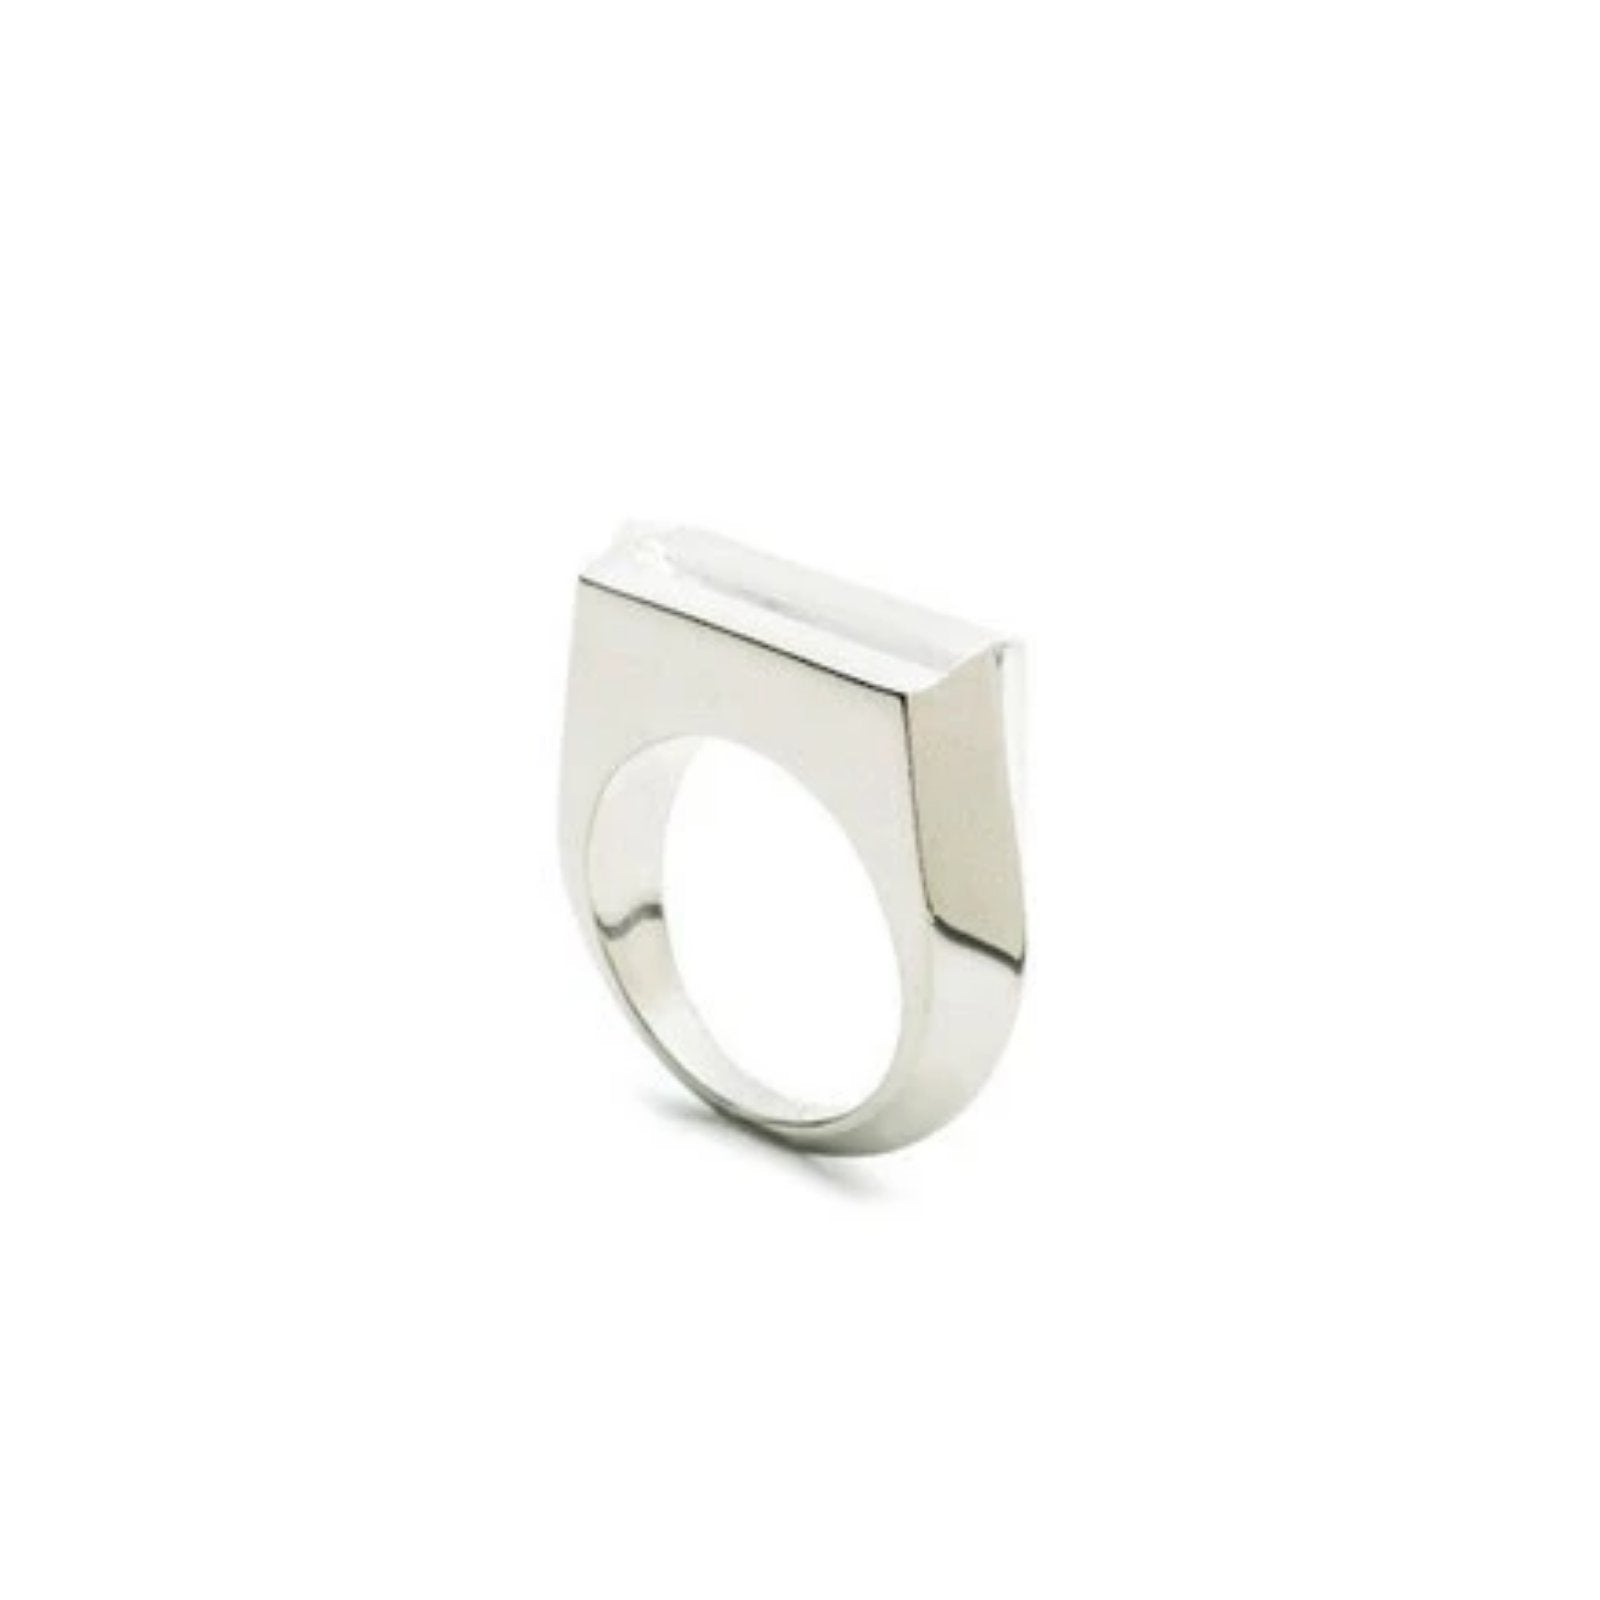 HEDRON ZERO RING - SILVER PLATED BRASS